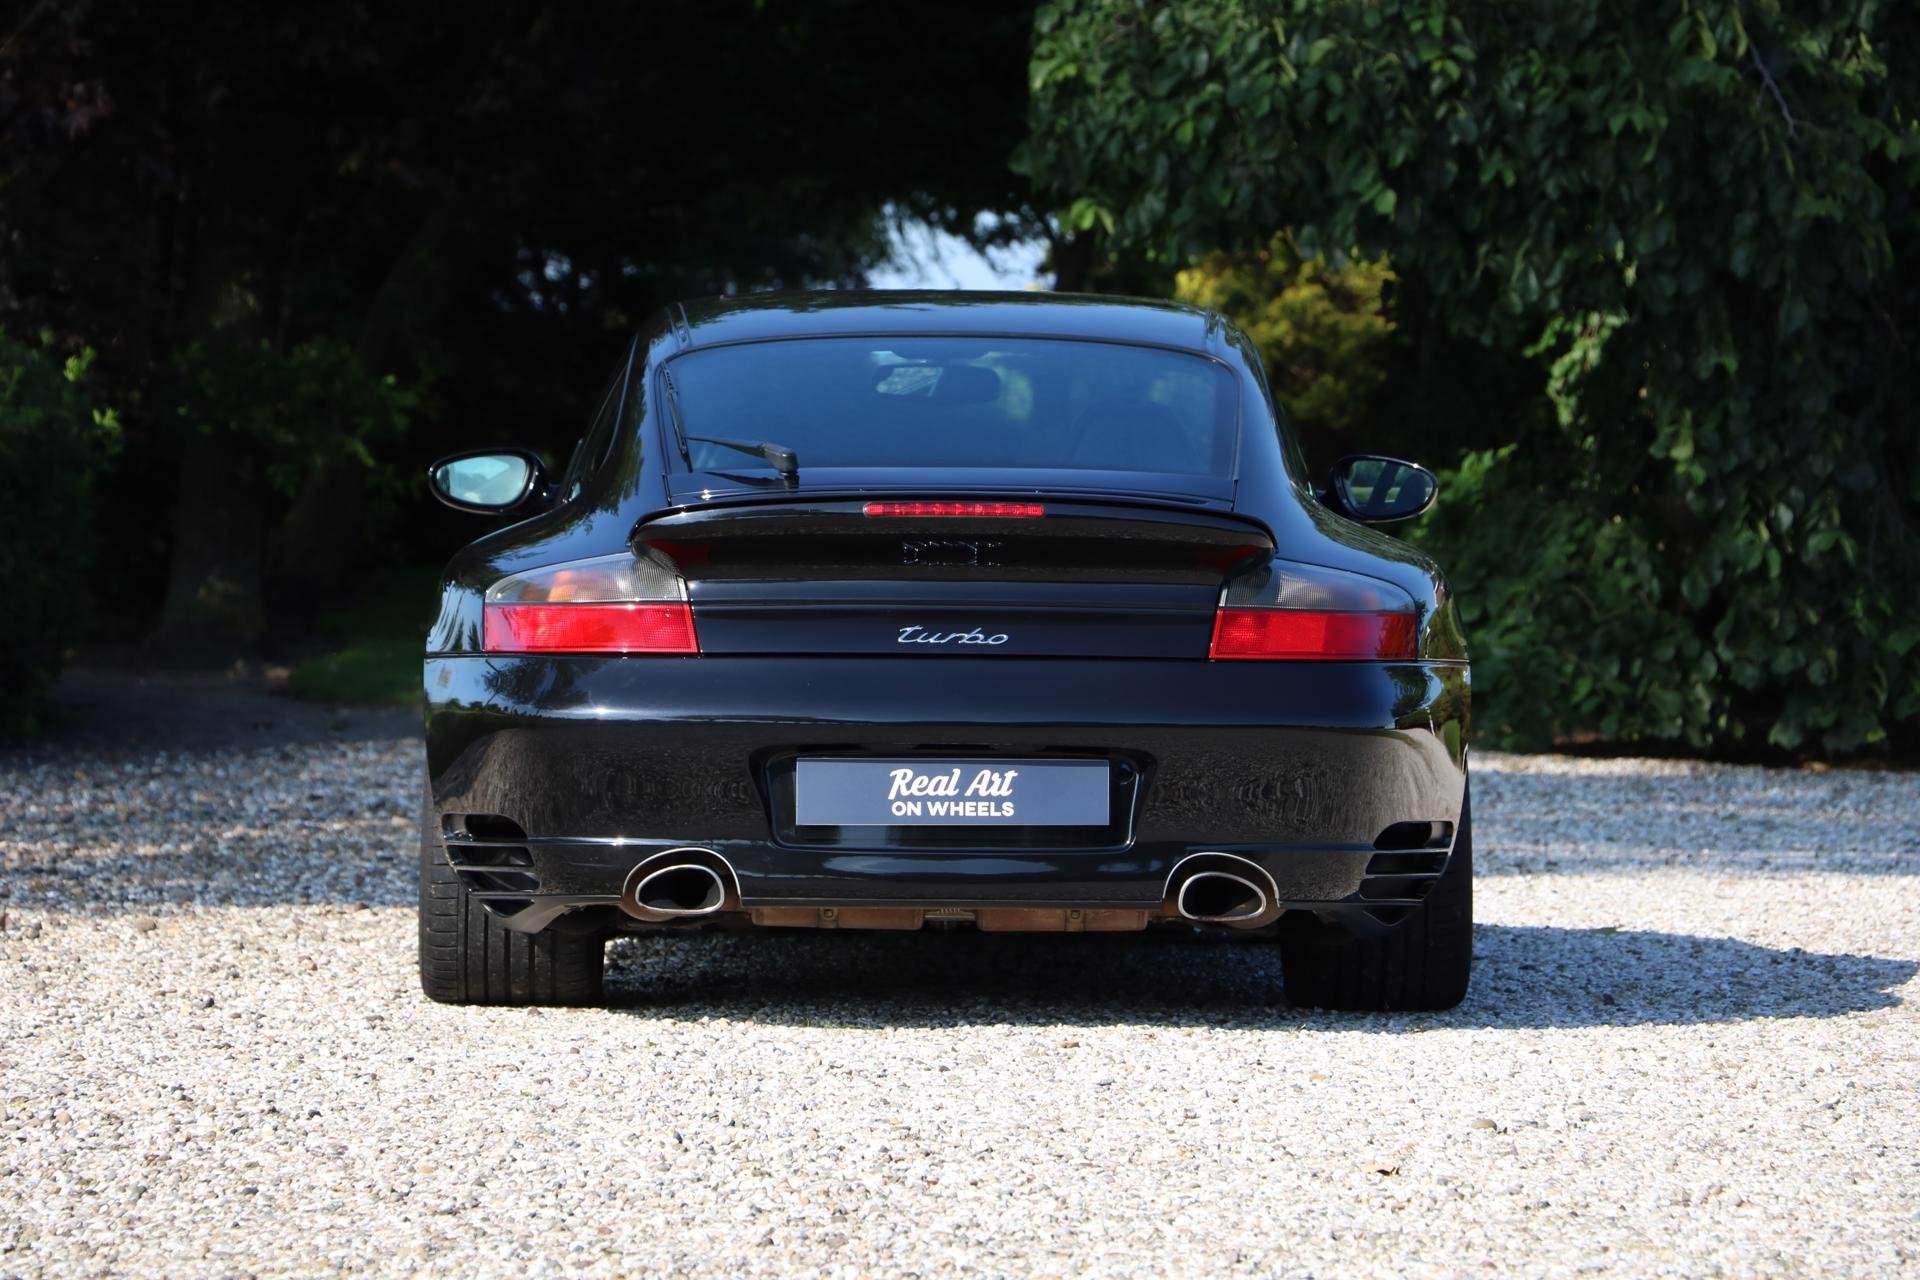 Real Art on Wheels | Porsche 996 Turbo